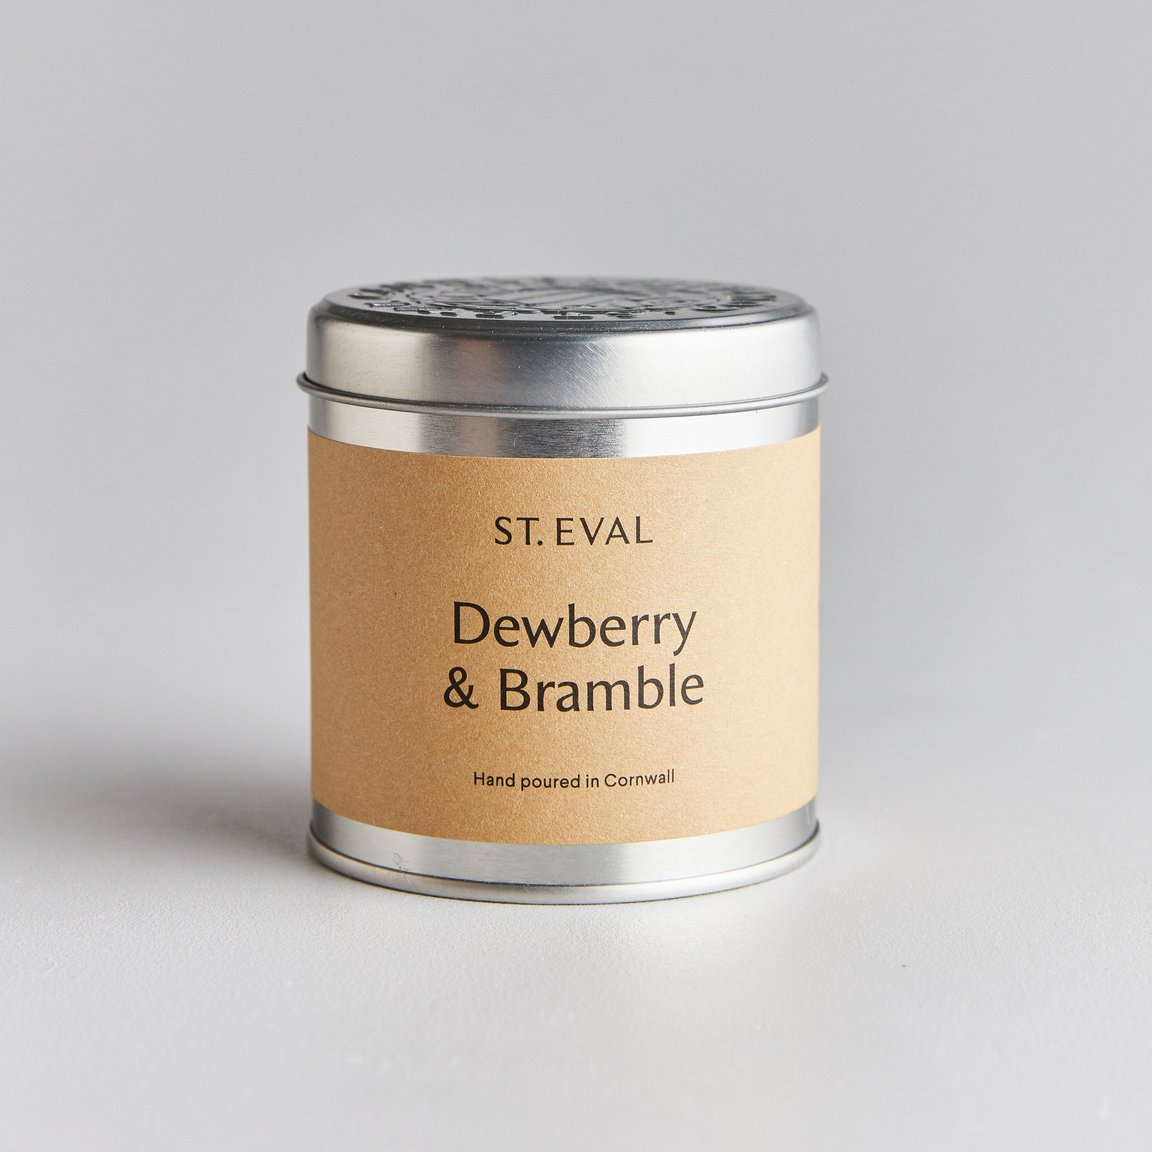 St Eval Dewberry & Bramble Scented Tin